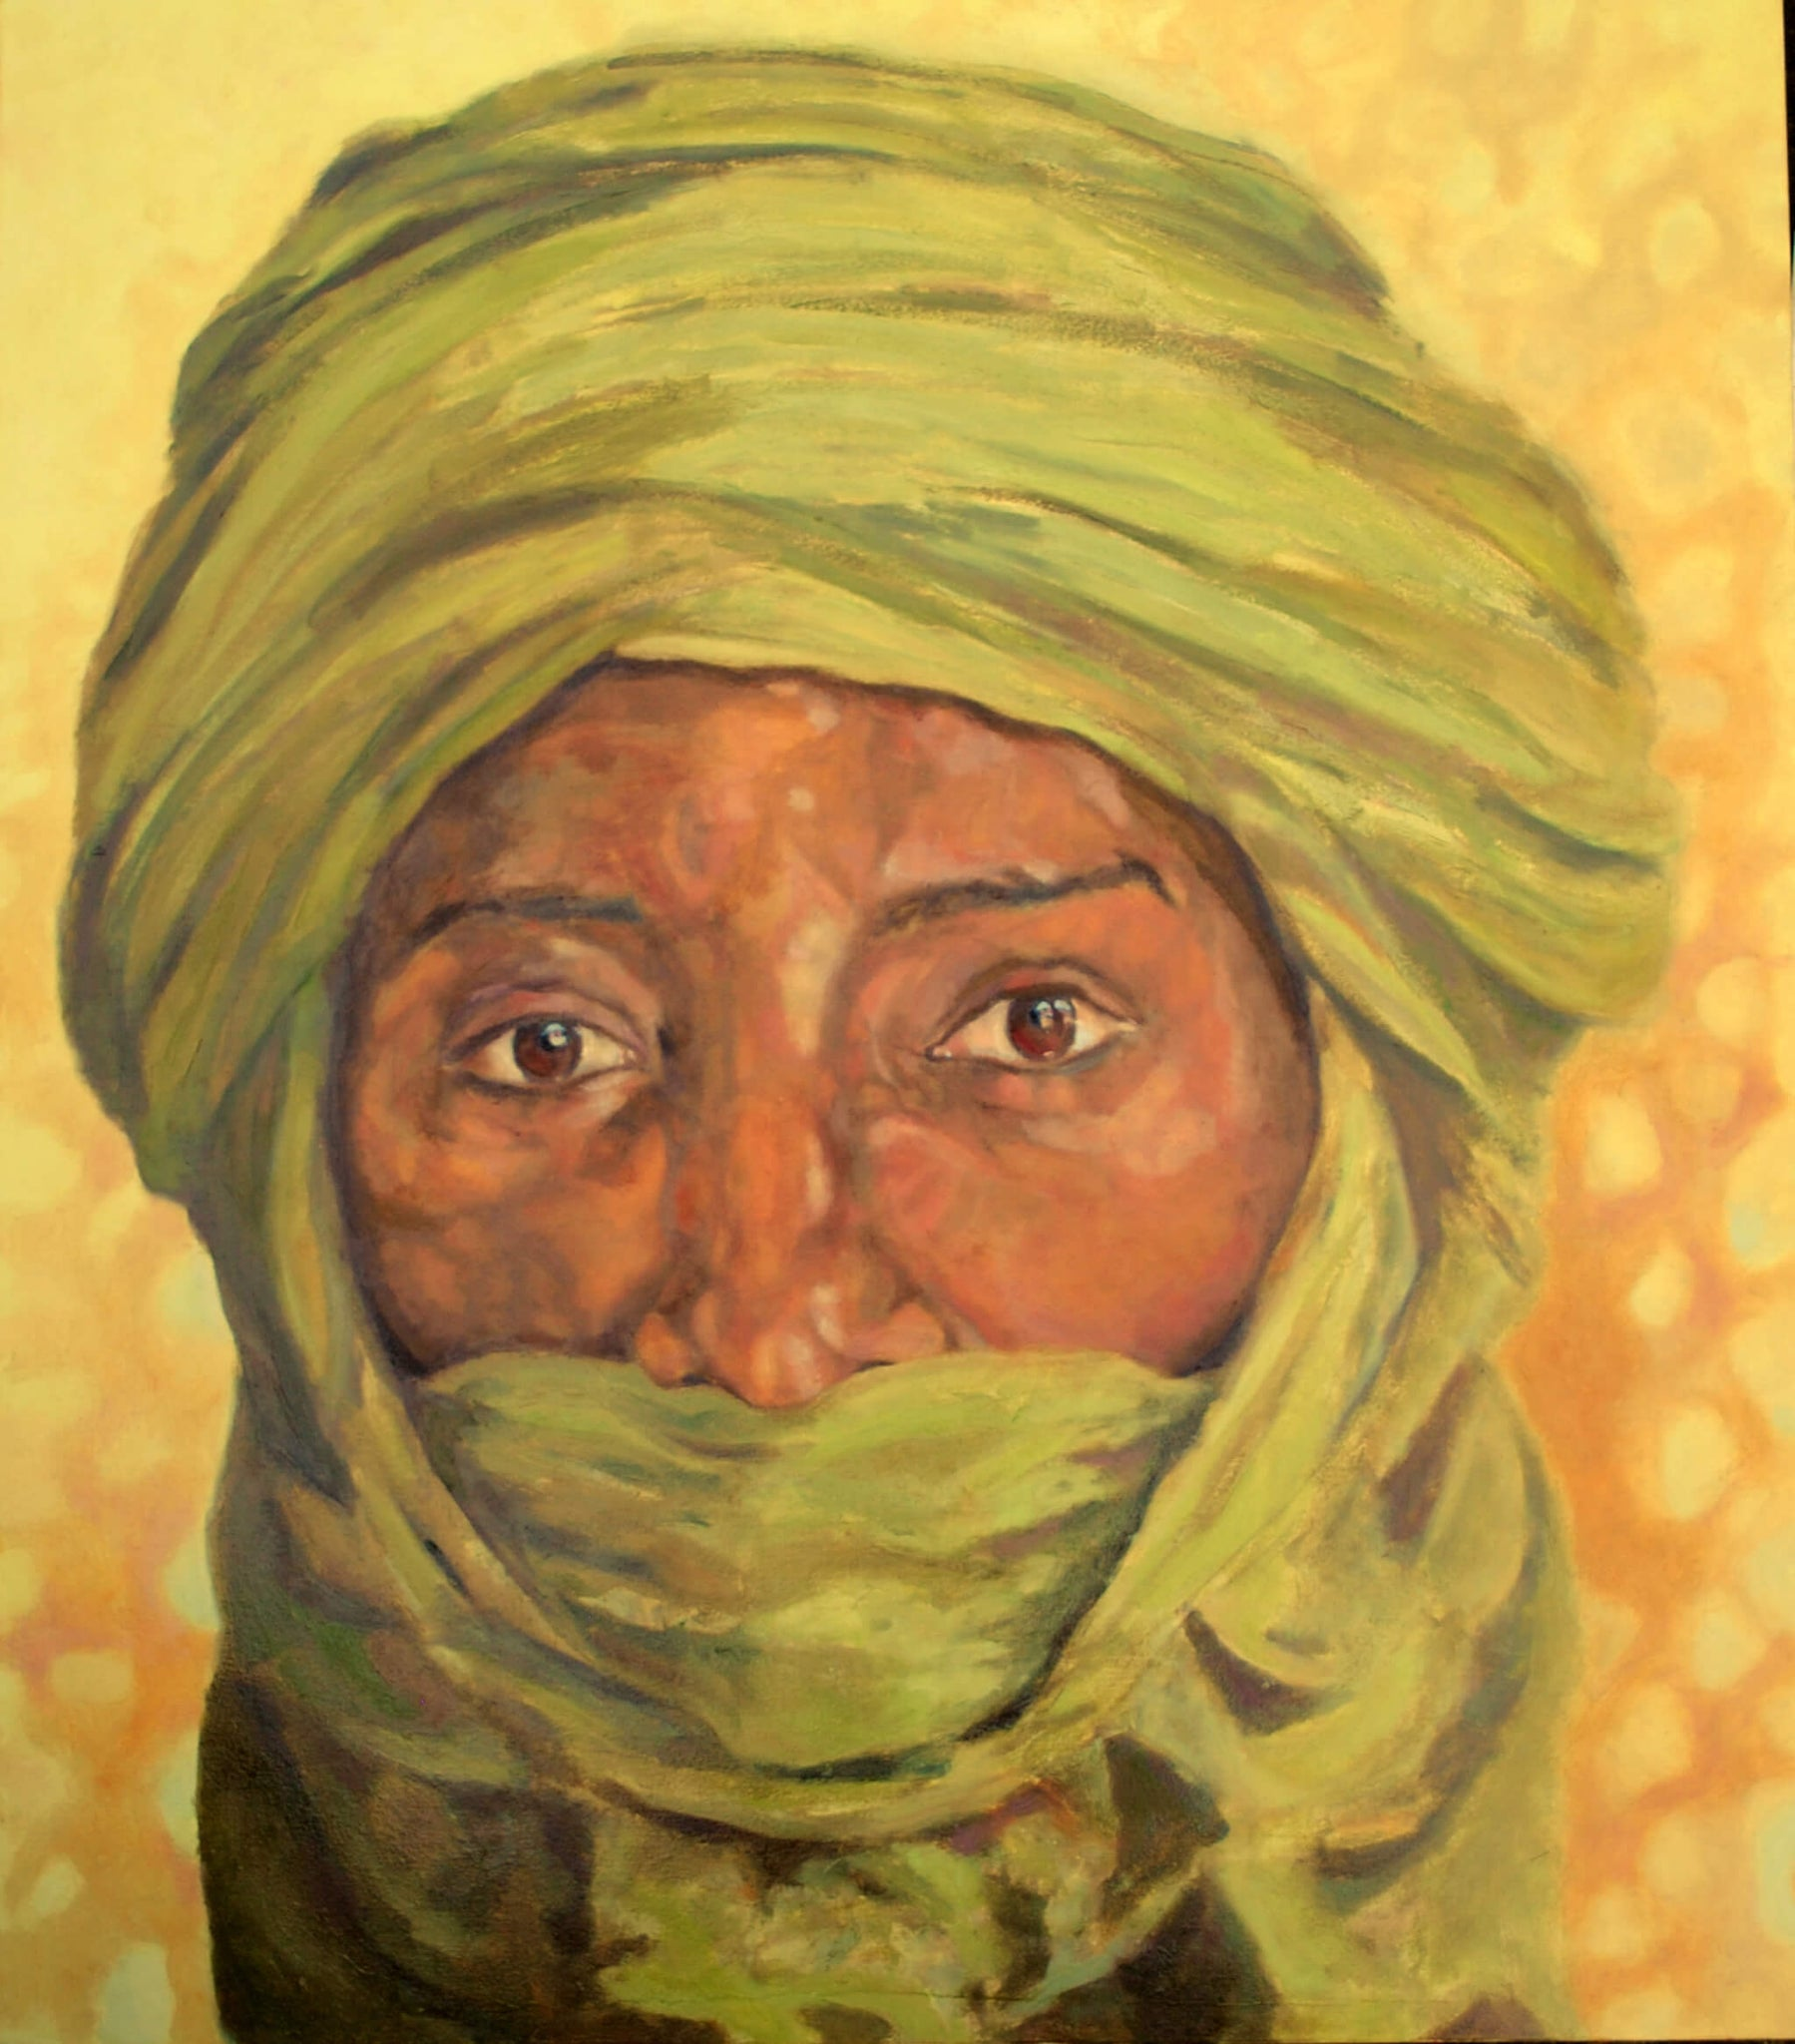 Tuareg from Timbuktu, Sahara portrait in oils on canvas artwork by Stella Tooth.